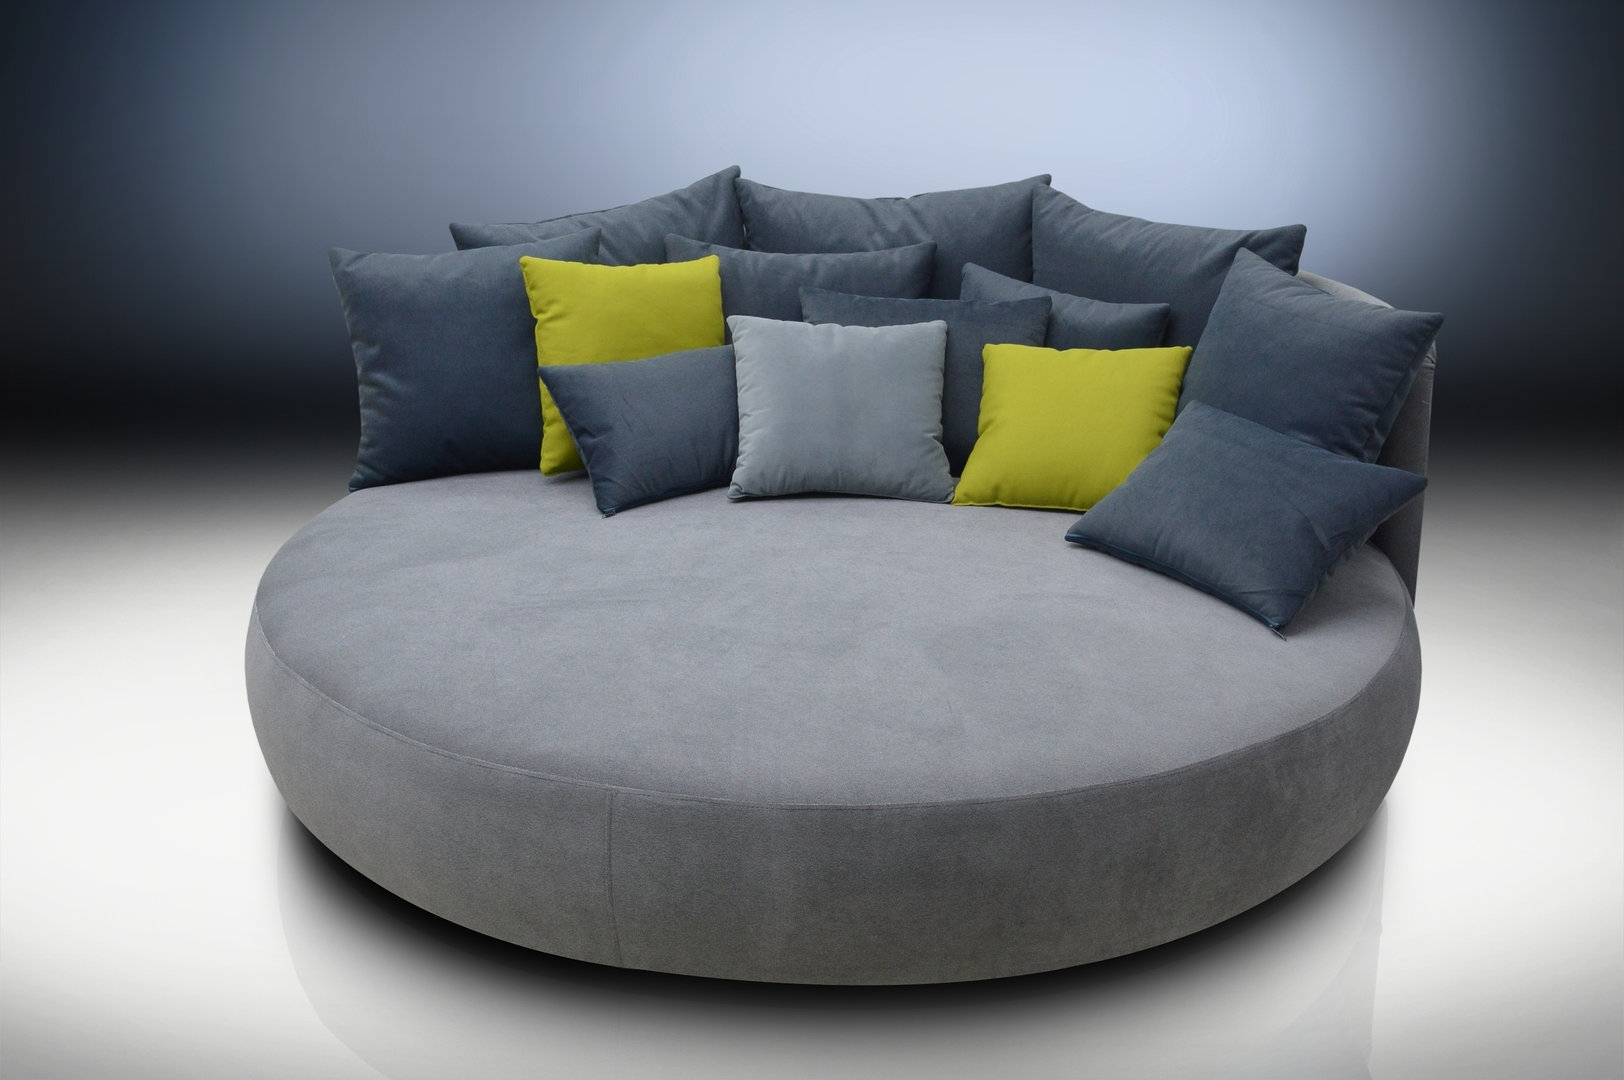 Trendy Sofa : Sofa Chair Round Elegant Sofa Half Round Sofa Sofas Round Throughout Round Sofas (View 19 of 20)